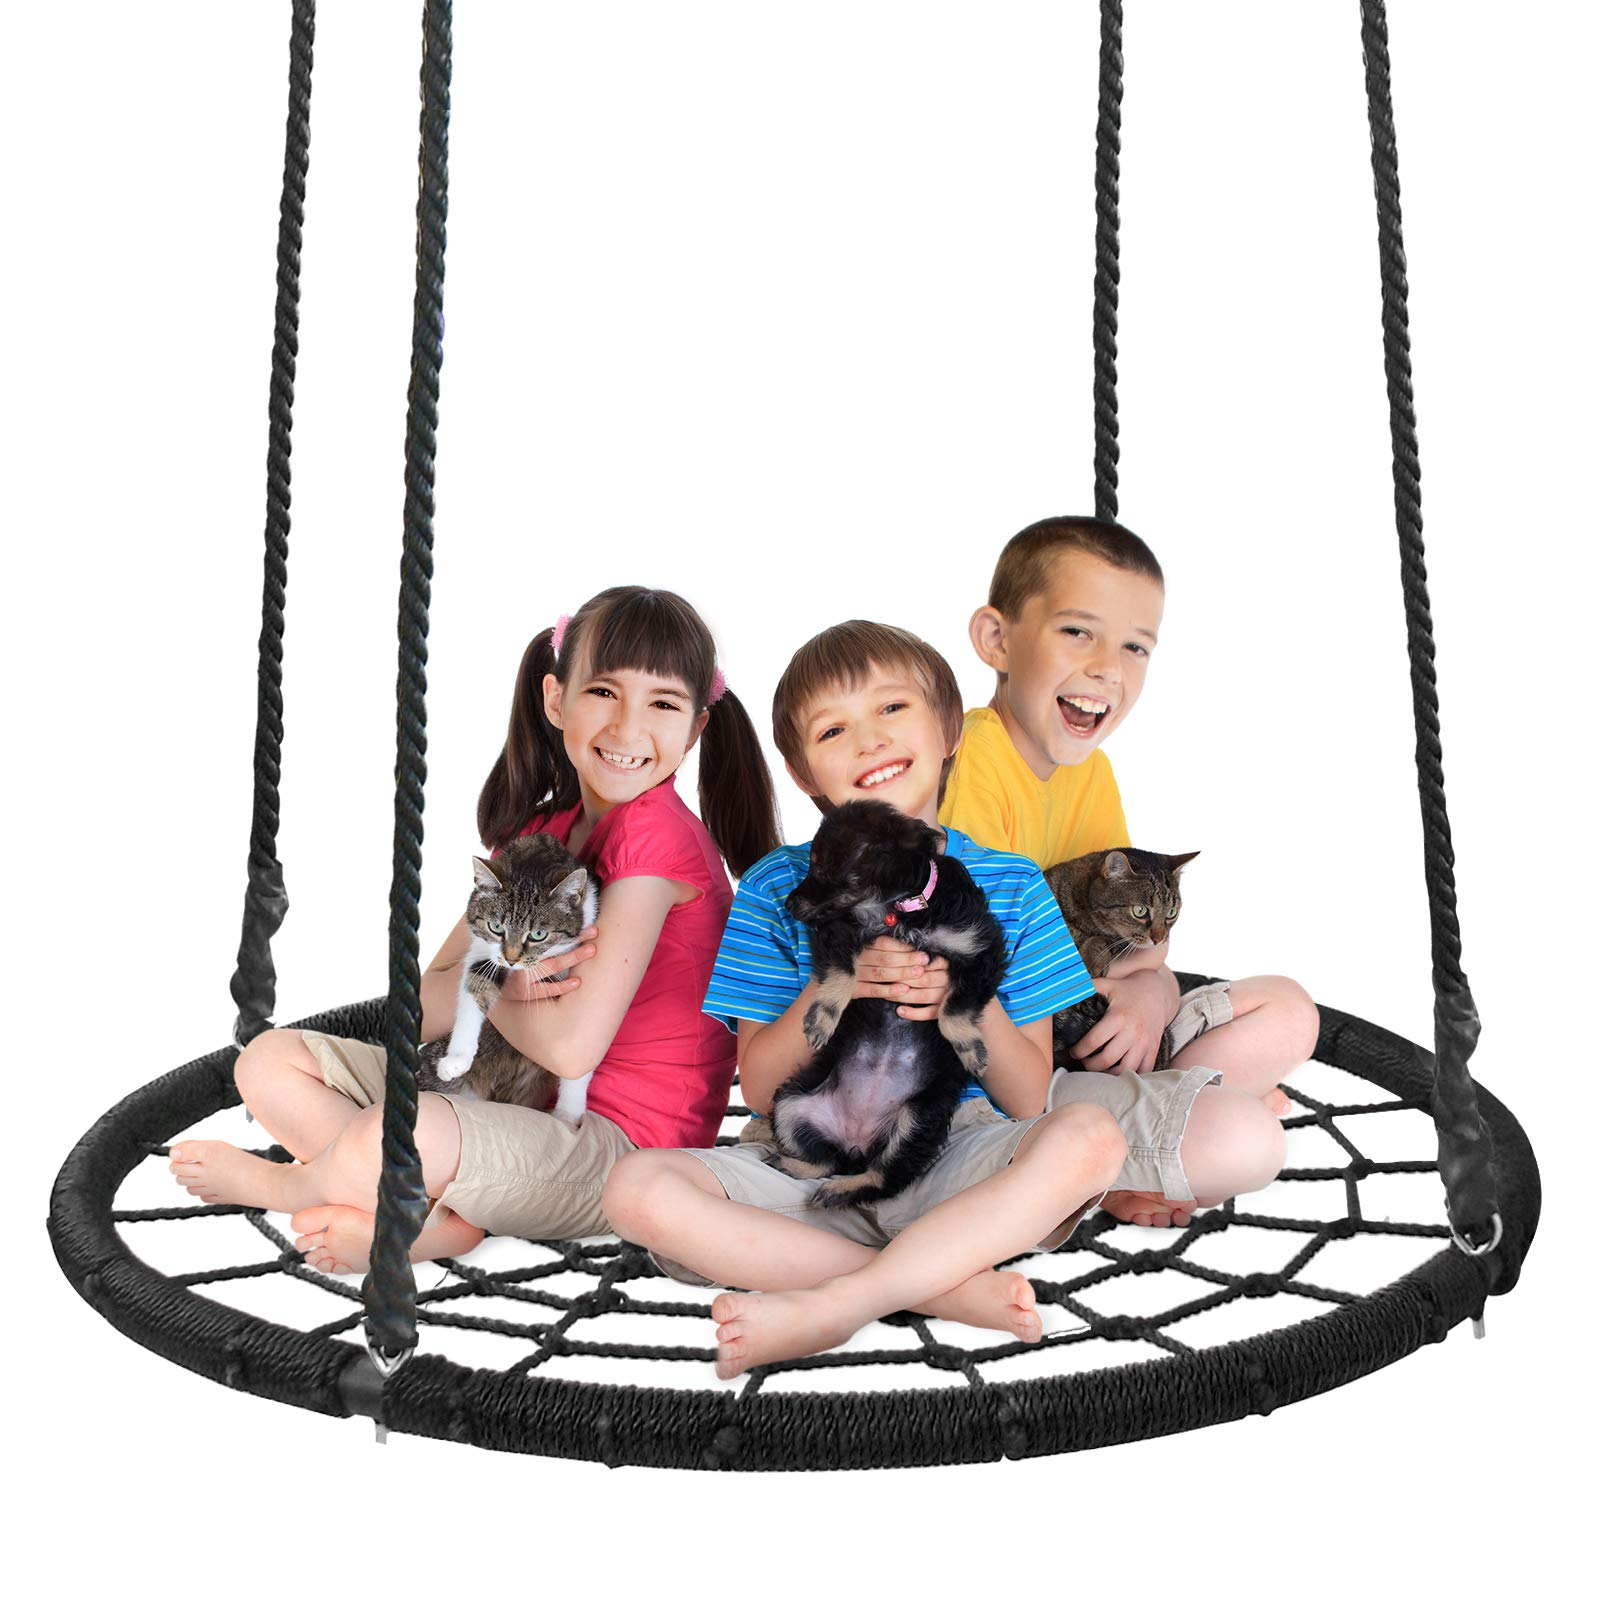 Super Deal XXL 48'' Web Tree Swing Set - Largest Platform - 360°Rotate° - 71'' Adjustable Detachable Nylon Rope - Attaches to Trees or Swing Sets - for Multiple Kids or Adult (48'')